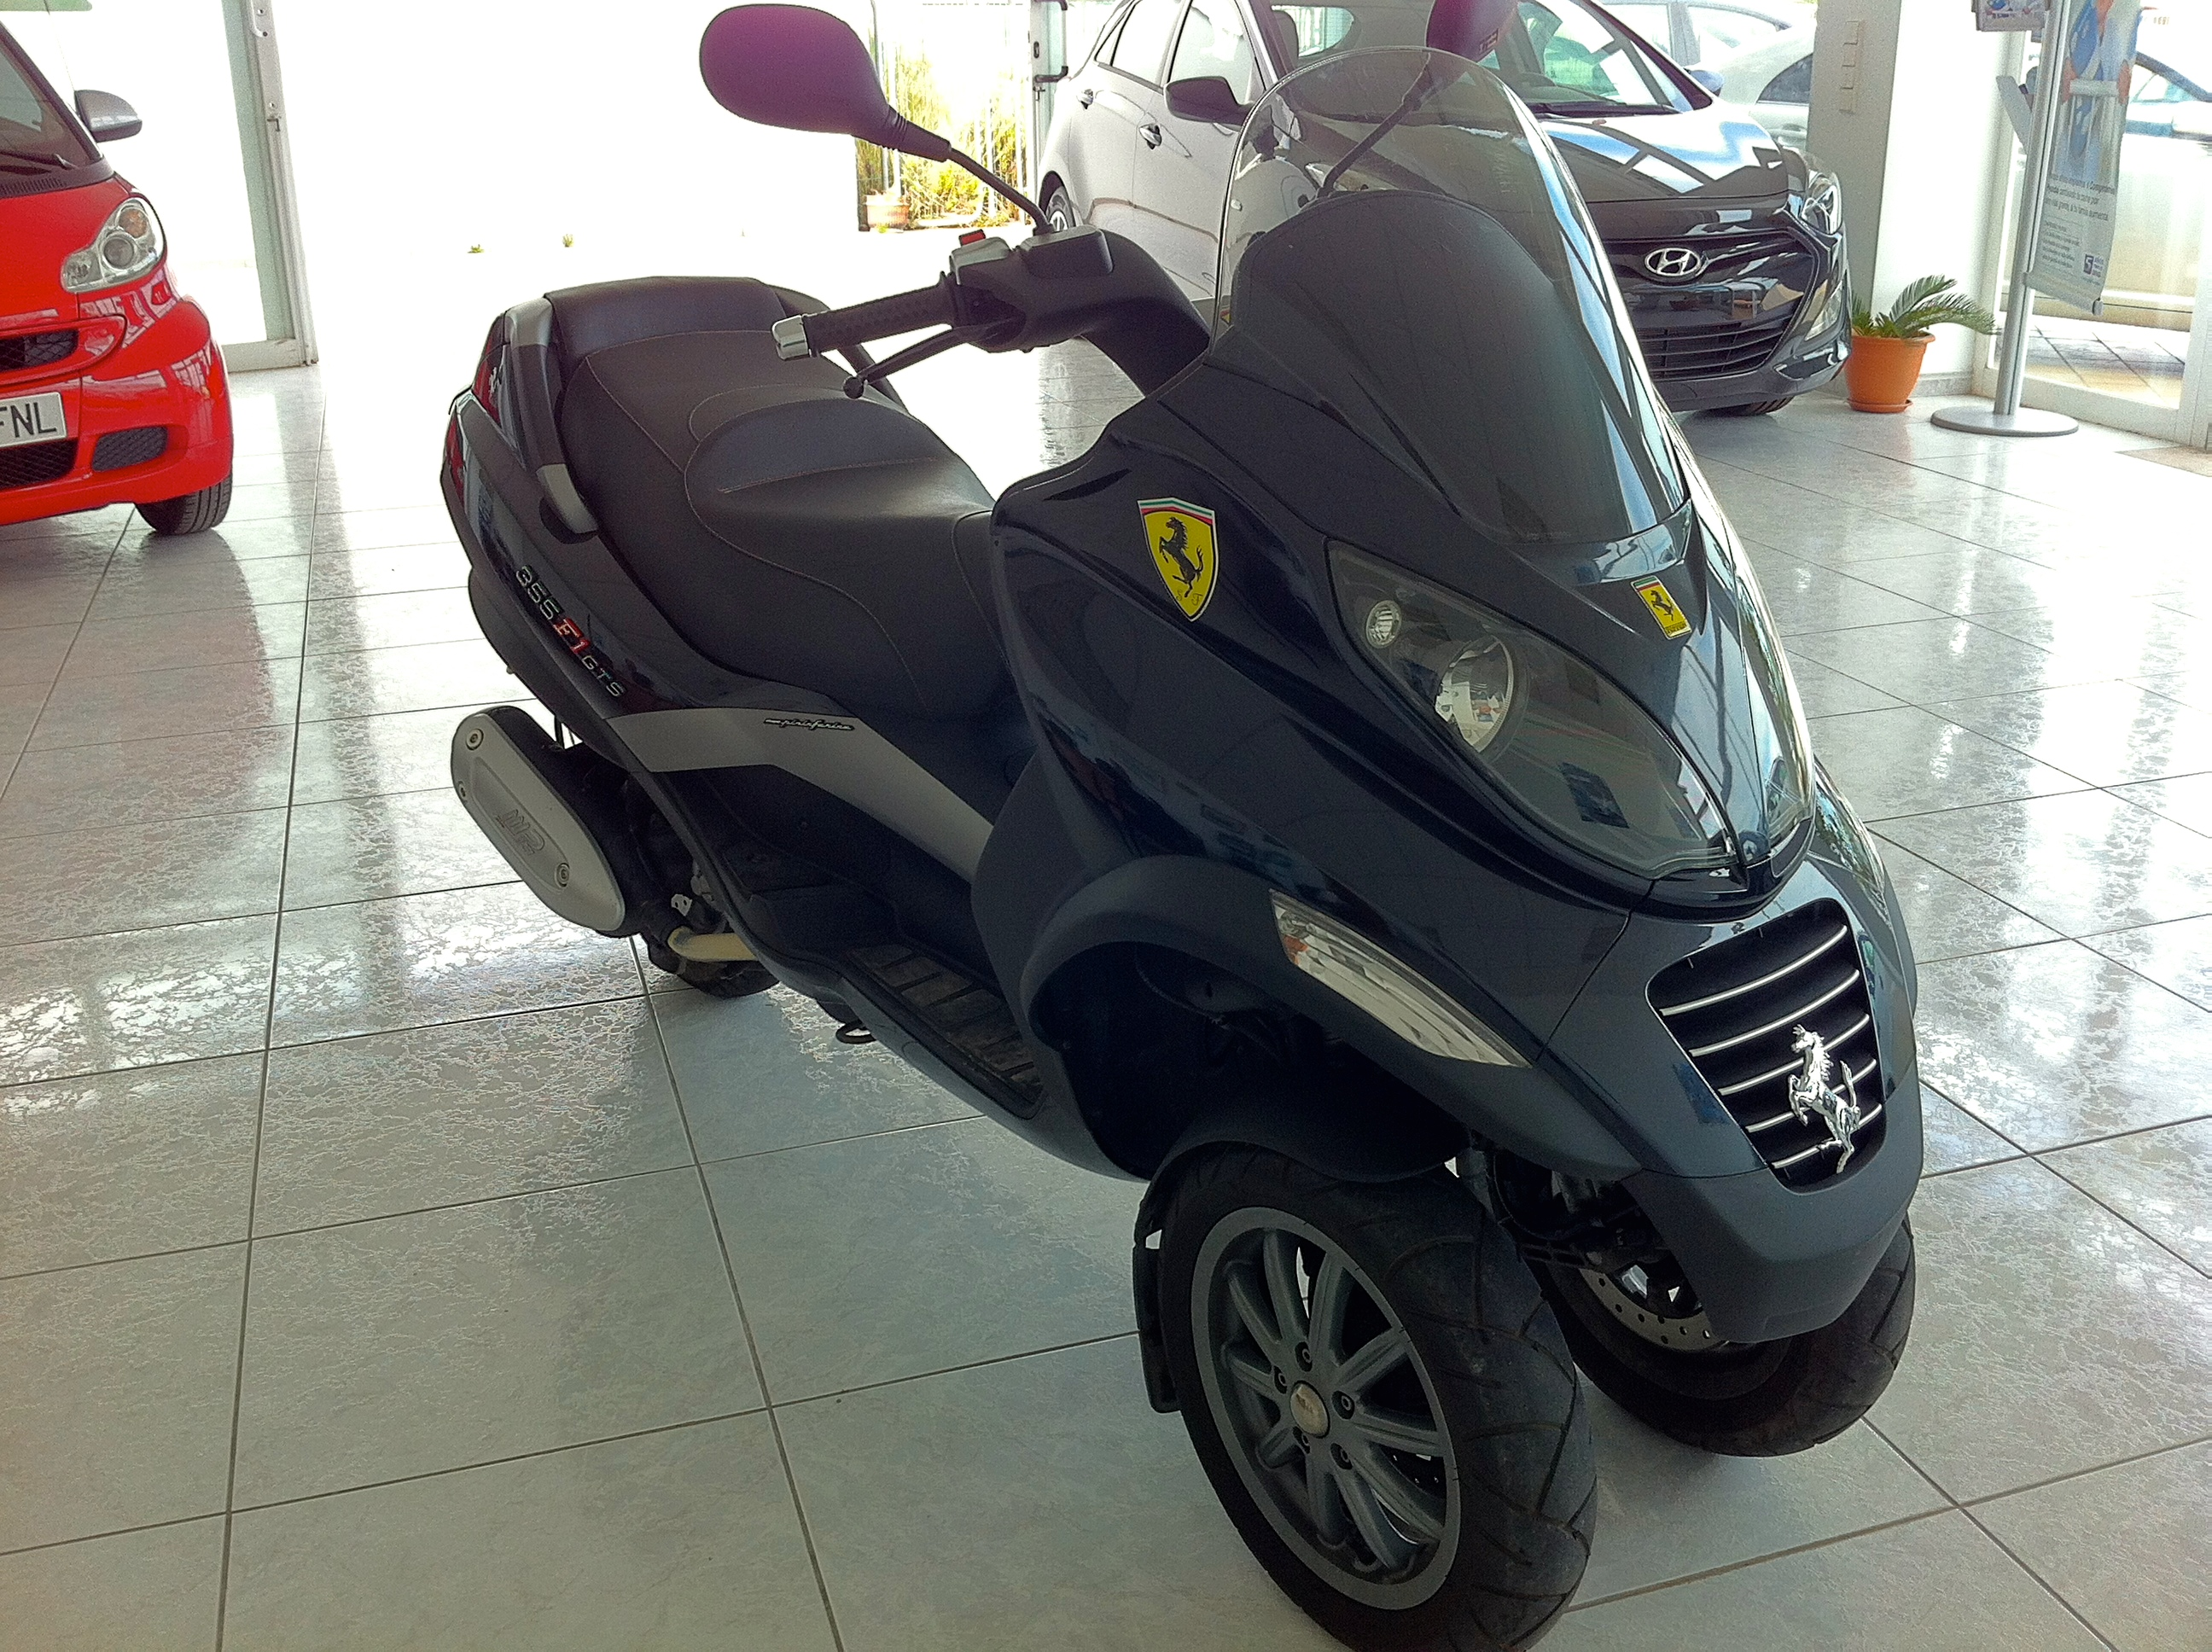 piaggio mp3 250 ferrari edition |